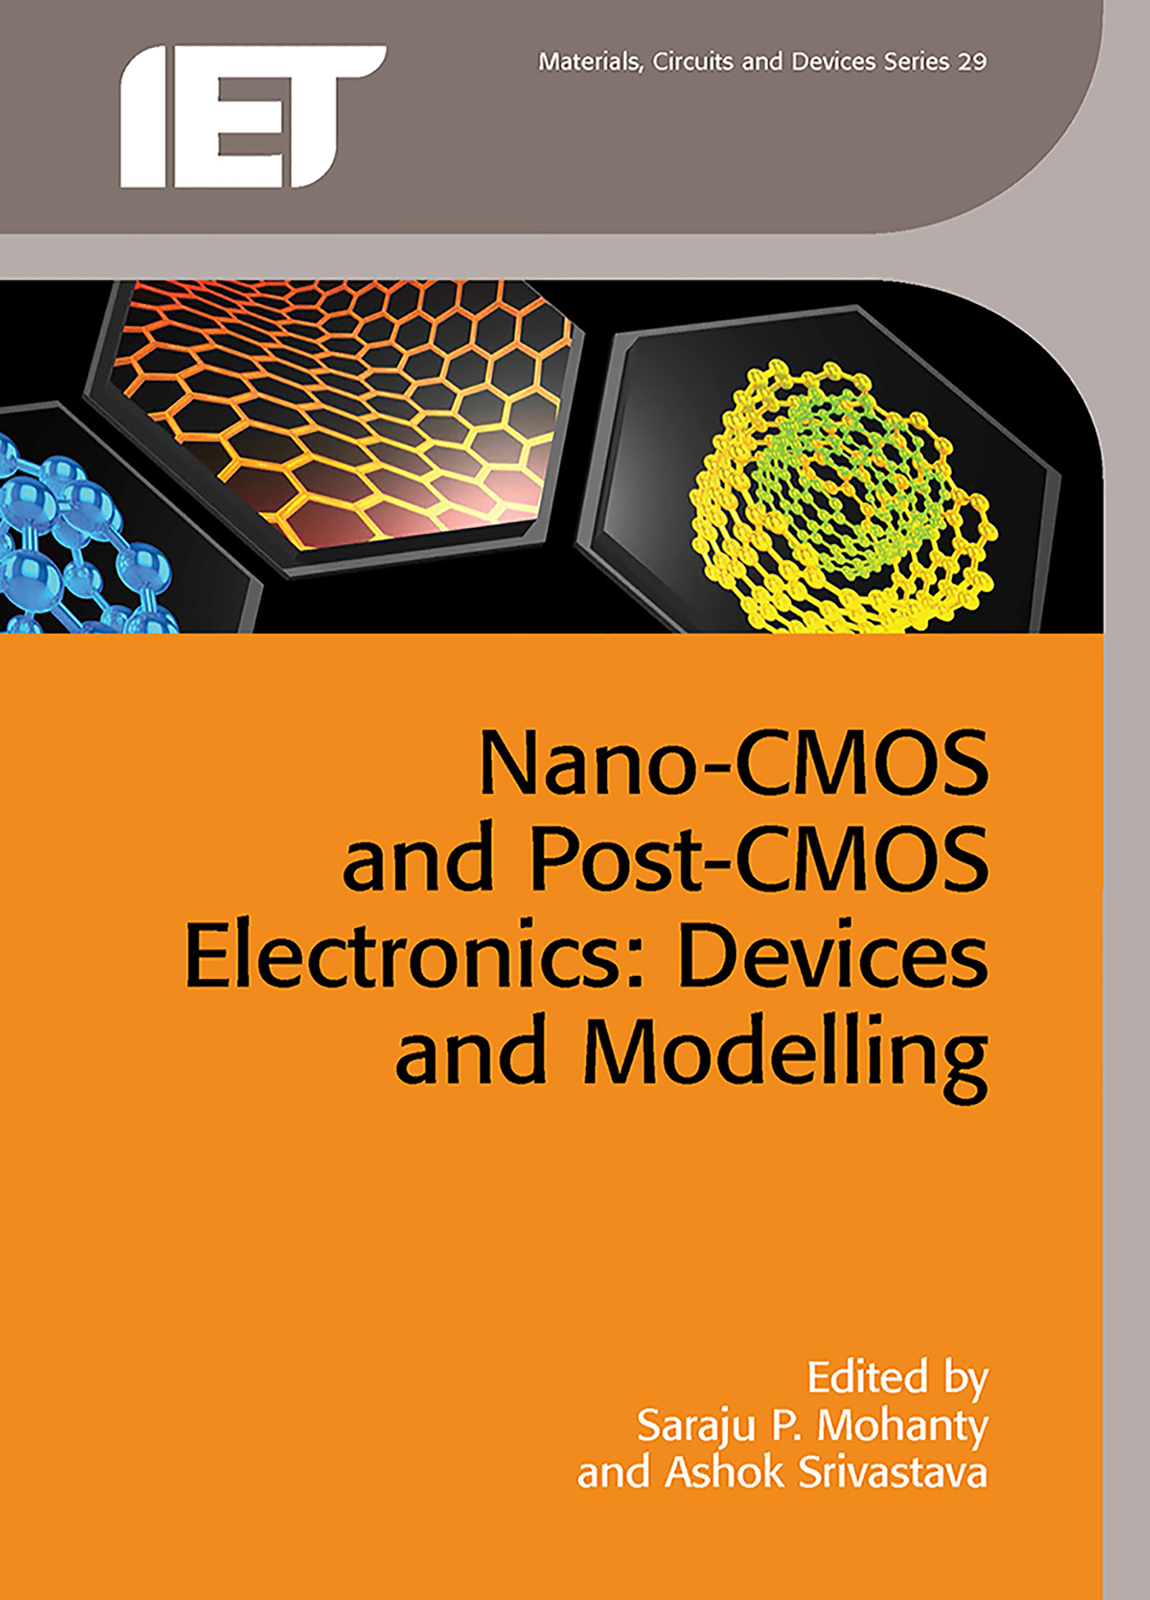 Nano-CMOS and Post-CMOS Electronics: Devices and Modelling, The Institute of Engineering and Technology (IET), 2016